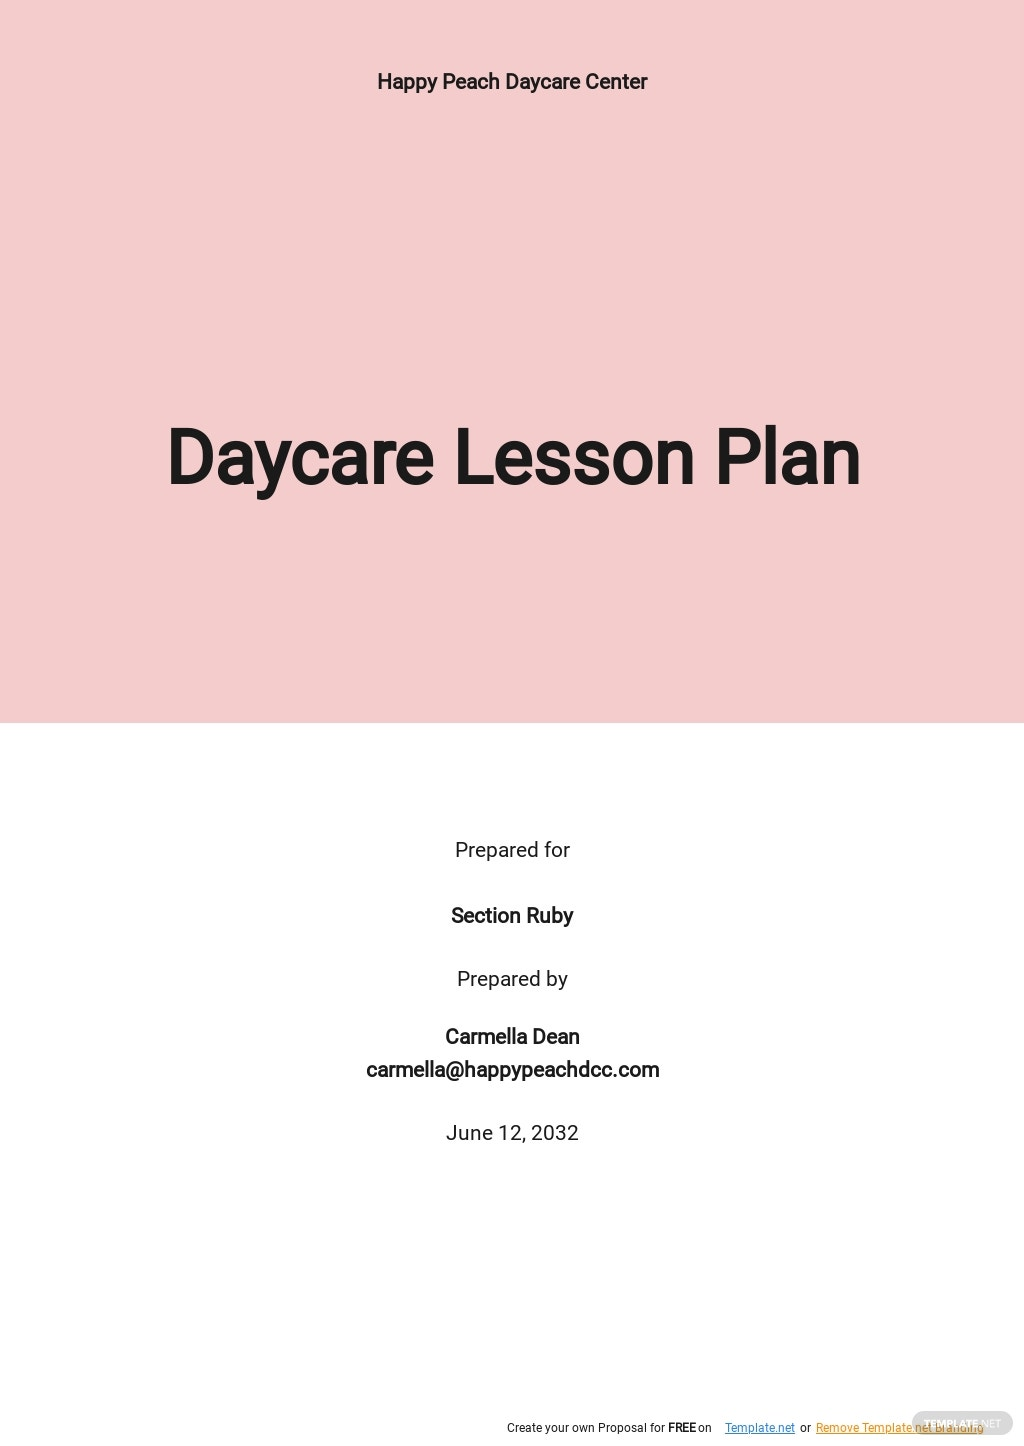 Free Blank Daycare Lesson Plan Template.jpe